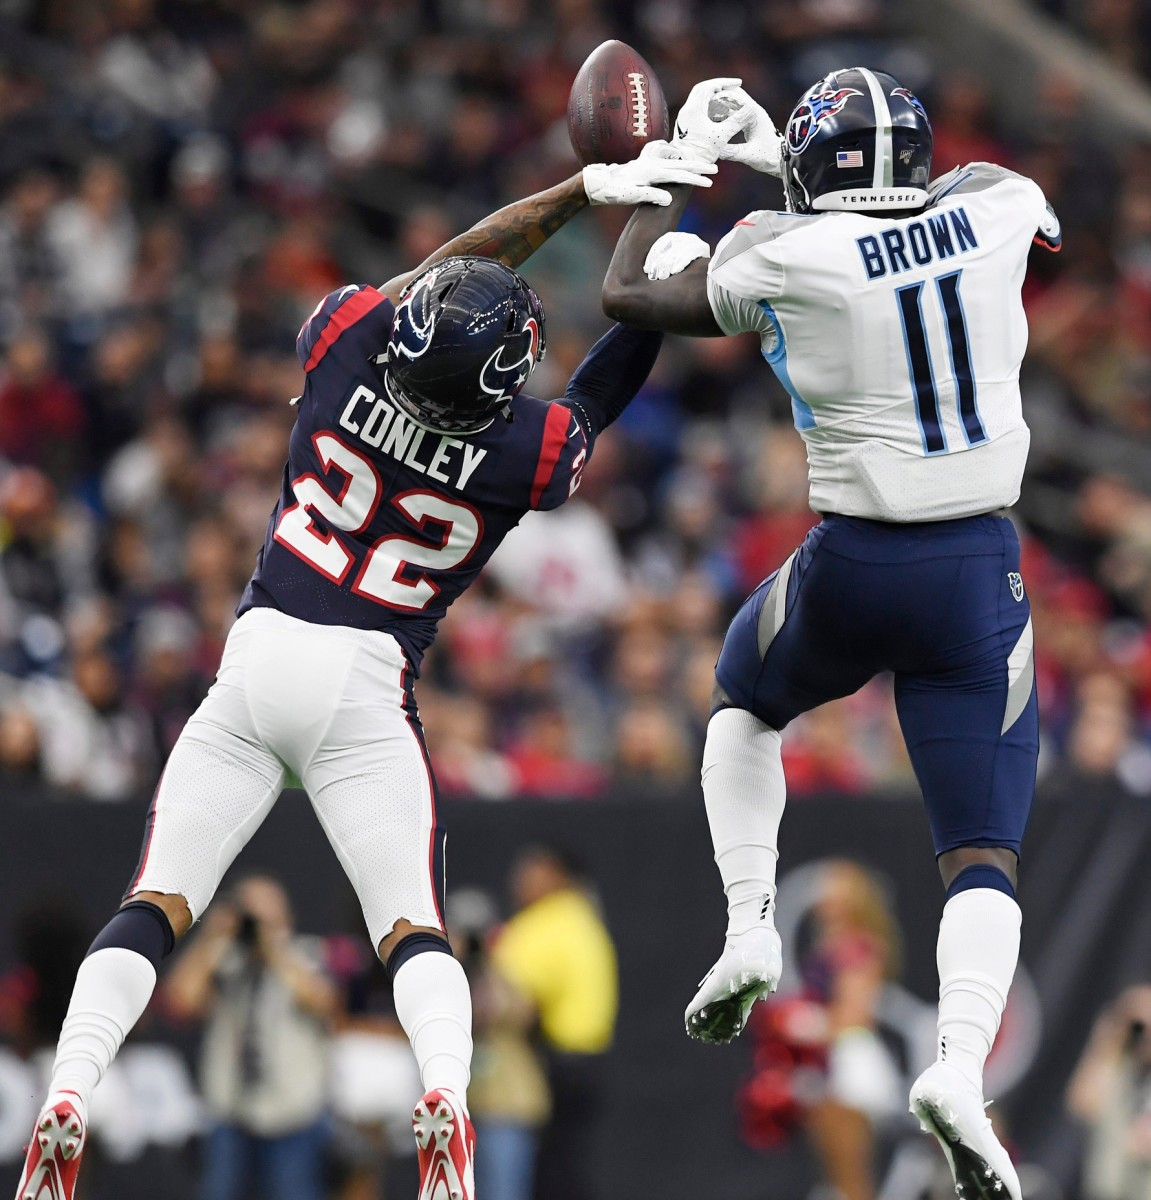 Houston cornerback Gareon Conley (22) breaks up a pass intended for Titans wide receiver A.J. Brown (11)© George Walker IV / Tennessean.com, Nashville Tennessean via Imagn Content Services, LLC